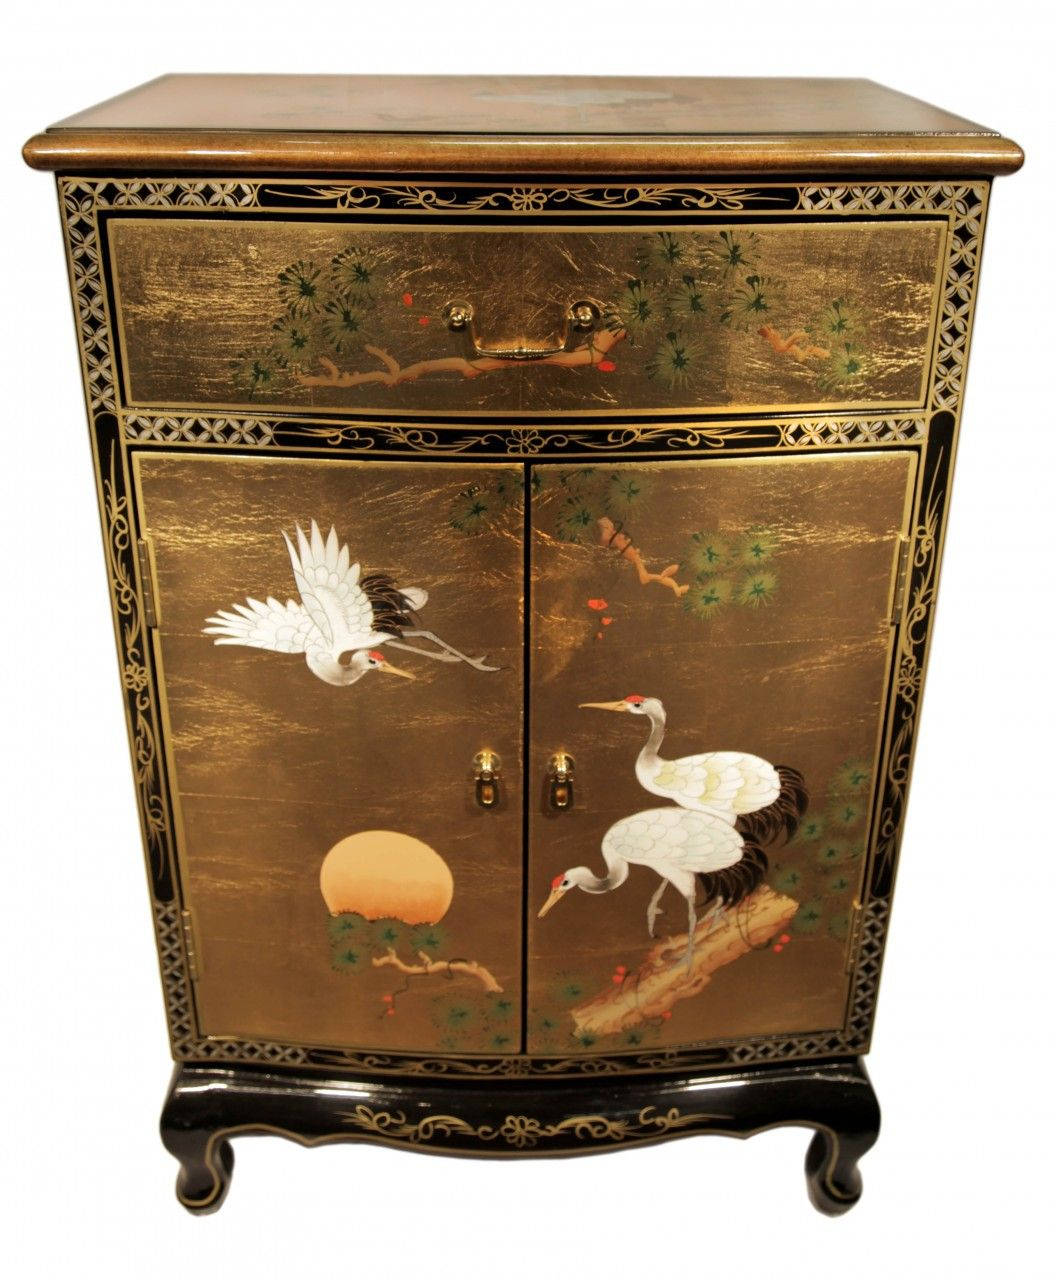 36 round front gold leaf shoe cabinet hand painted cranes in 2018 rh pinterest com